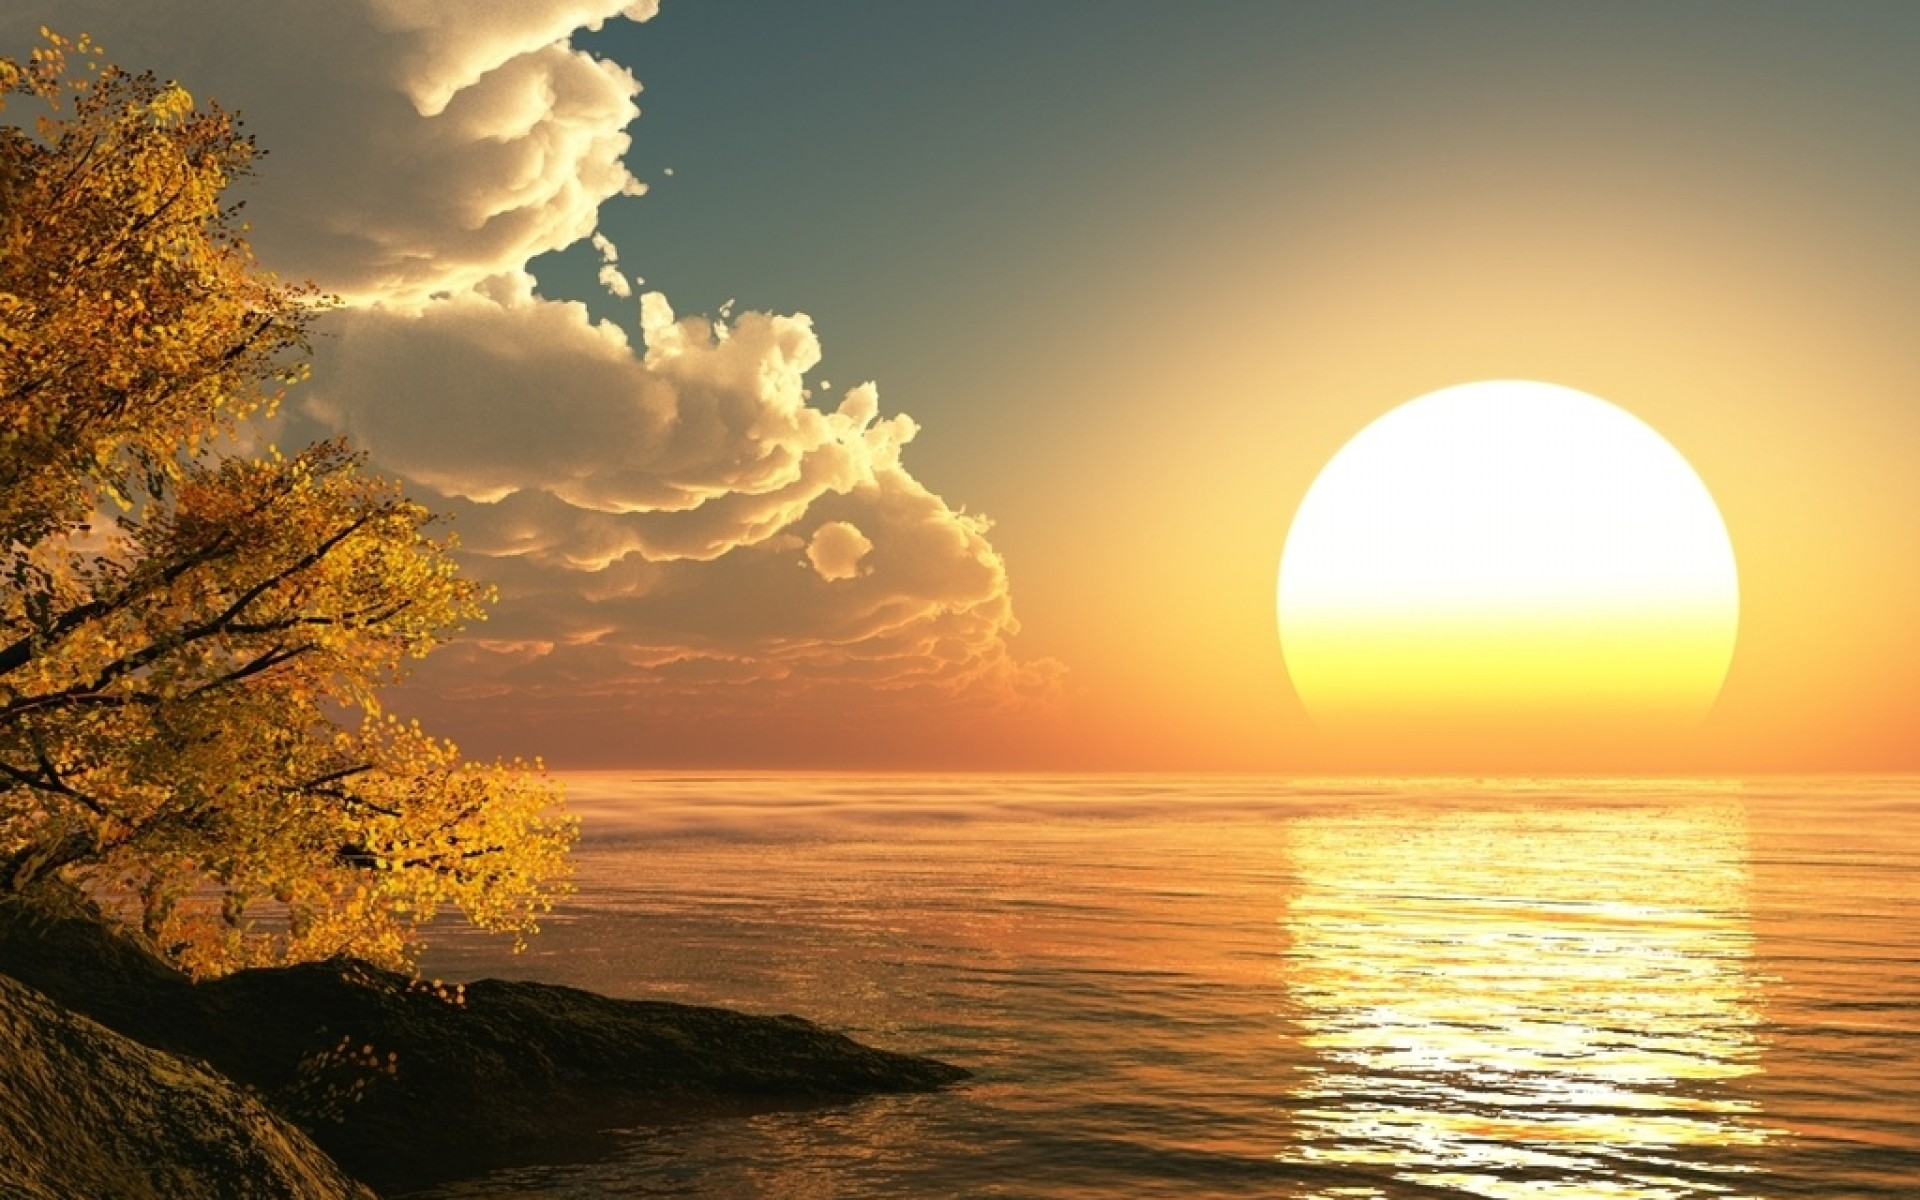 Sun Rising Wallpaper 3D Landscape